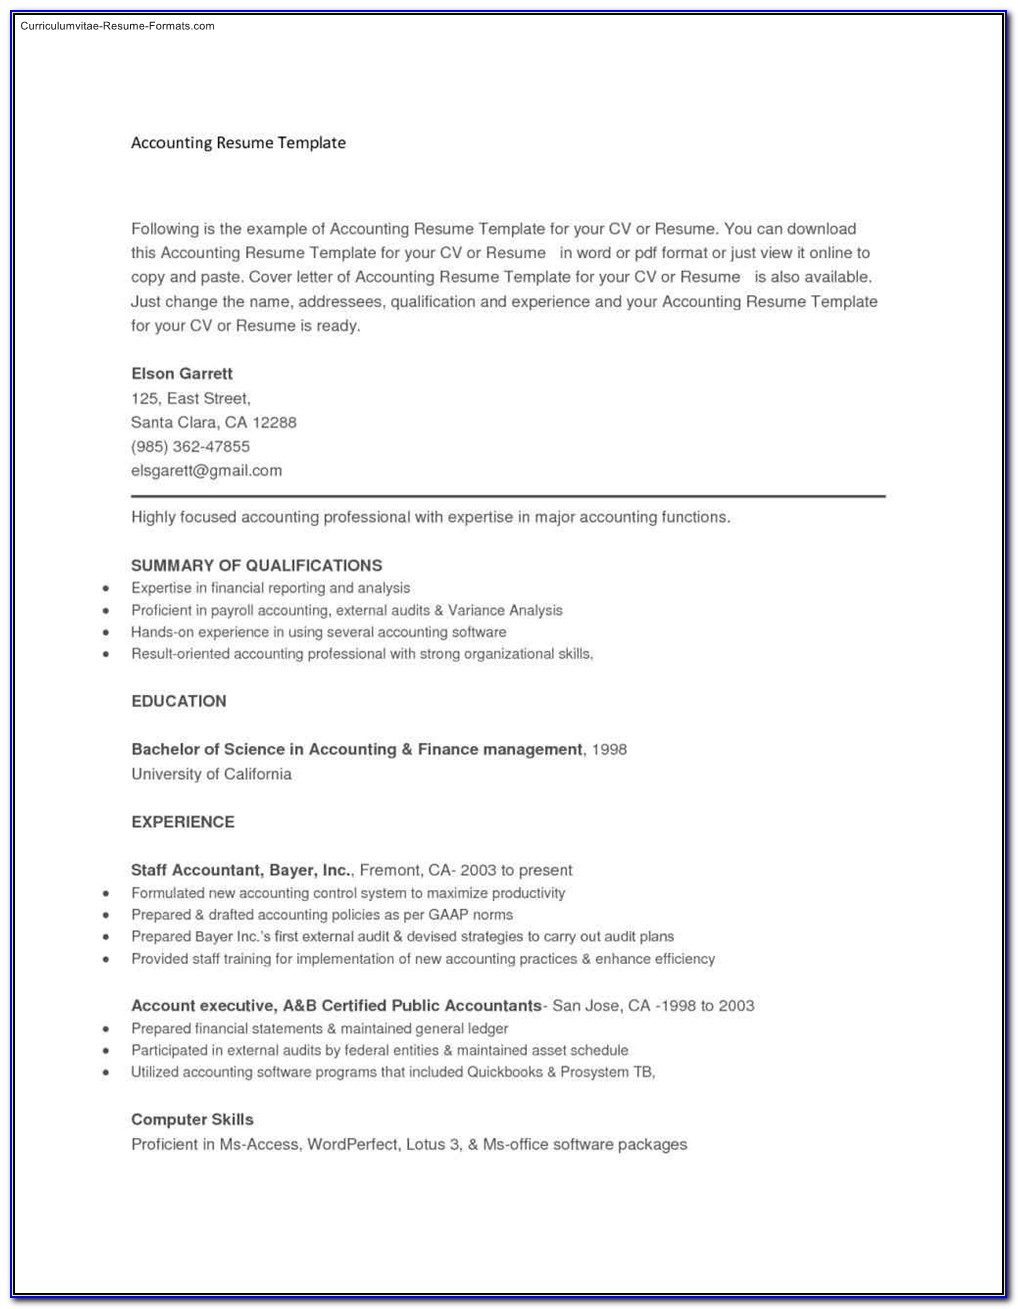 Copy And Paste Resume Templates